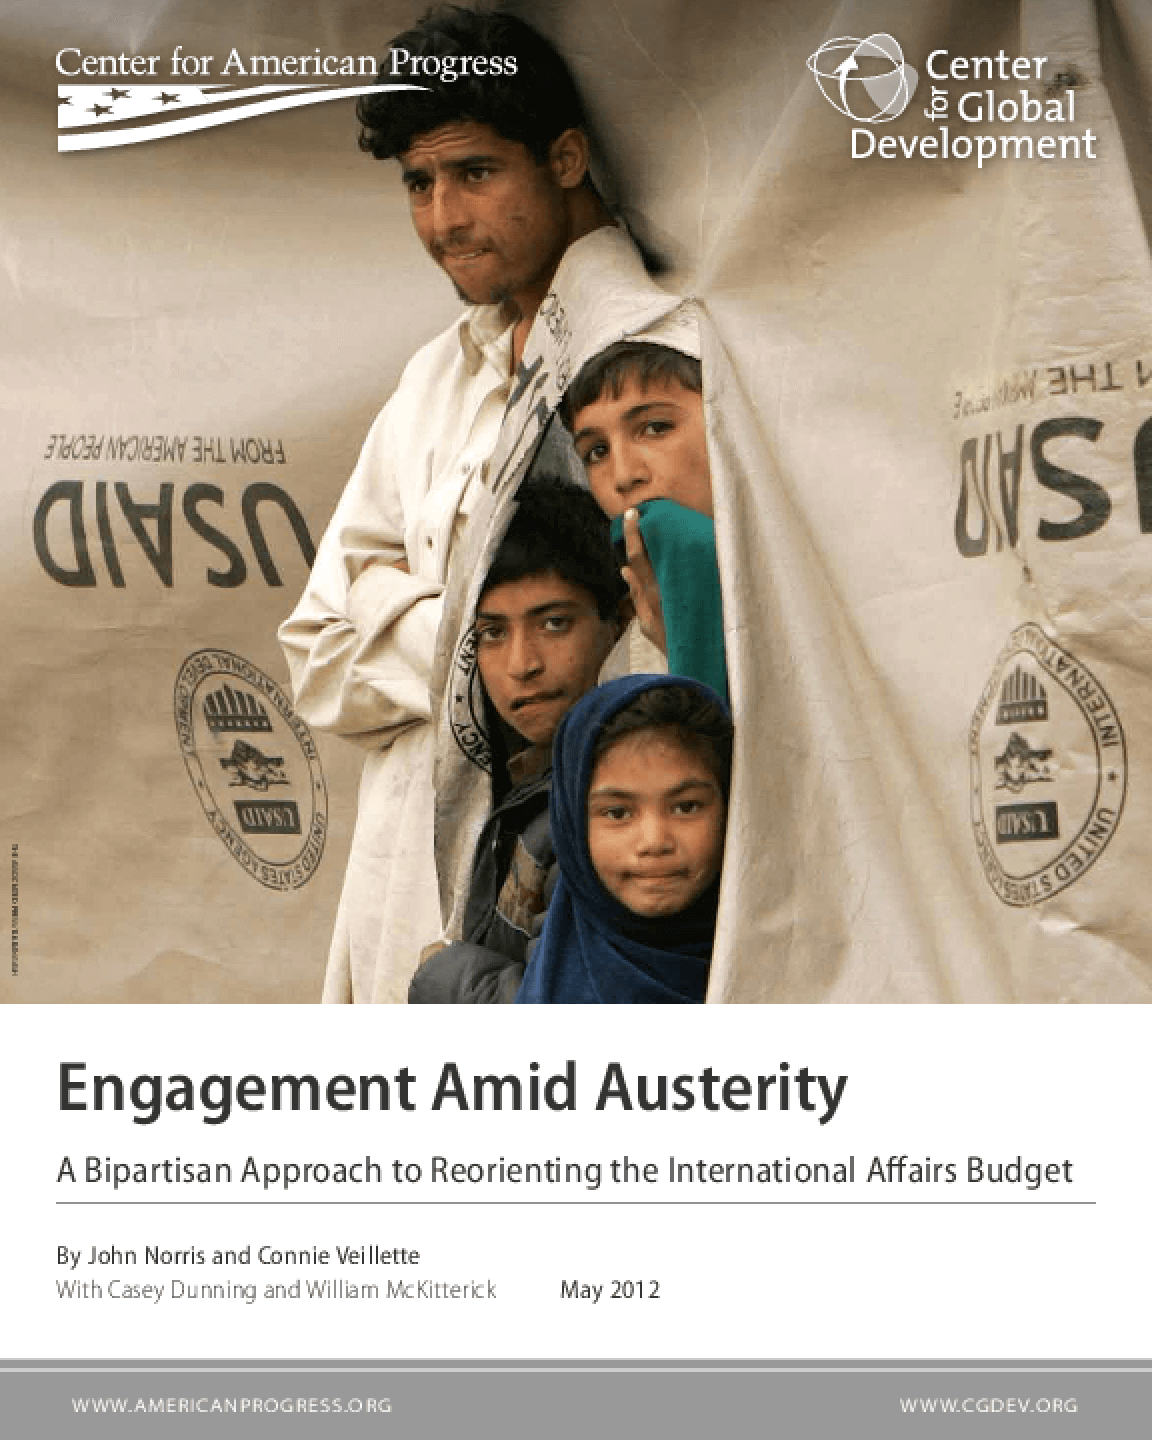 Engagement Amid Austerity: A Bipartisan Approach to Reorienting the International Affairs Budget